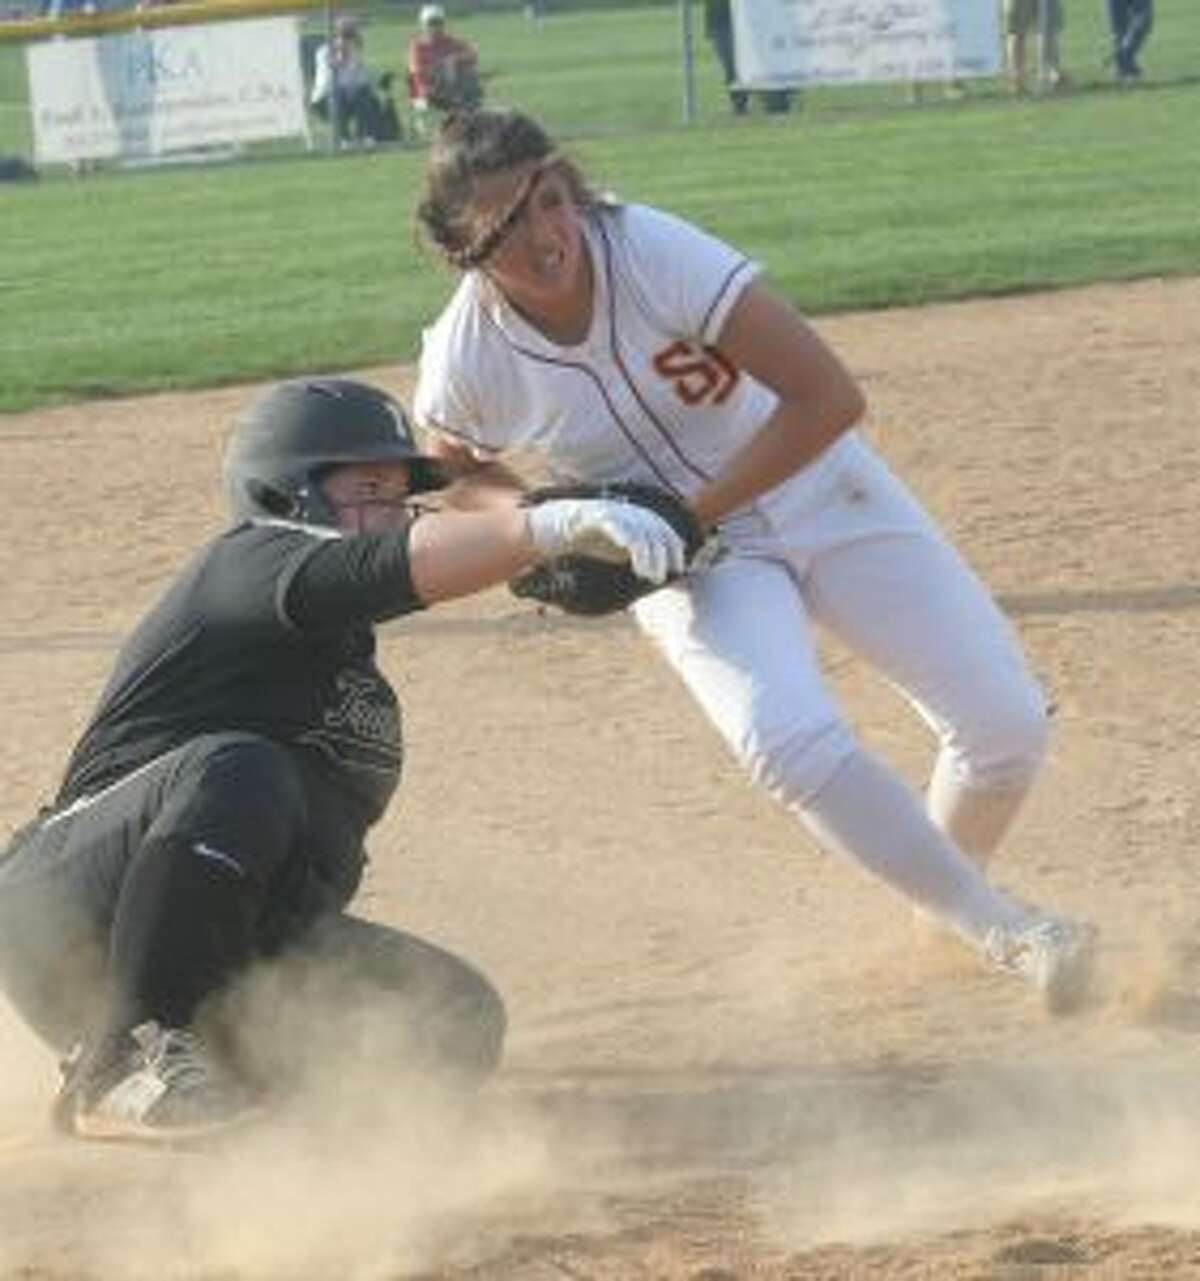 The Cadets' Kayla Giacobbe looks for confirmation after tagging out Mackenzie Bruggeman to complete a double play in the sixth inning.